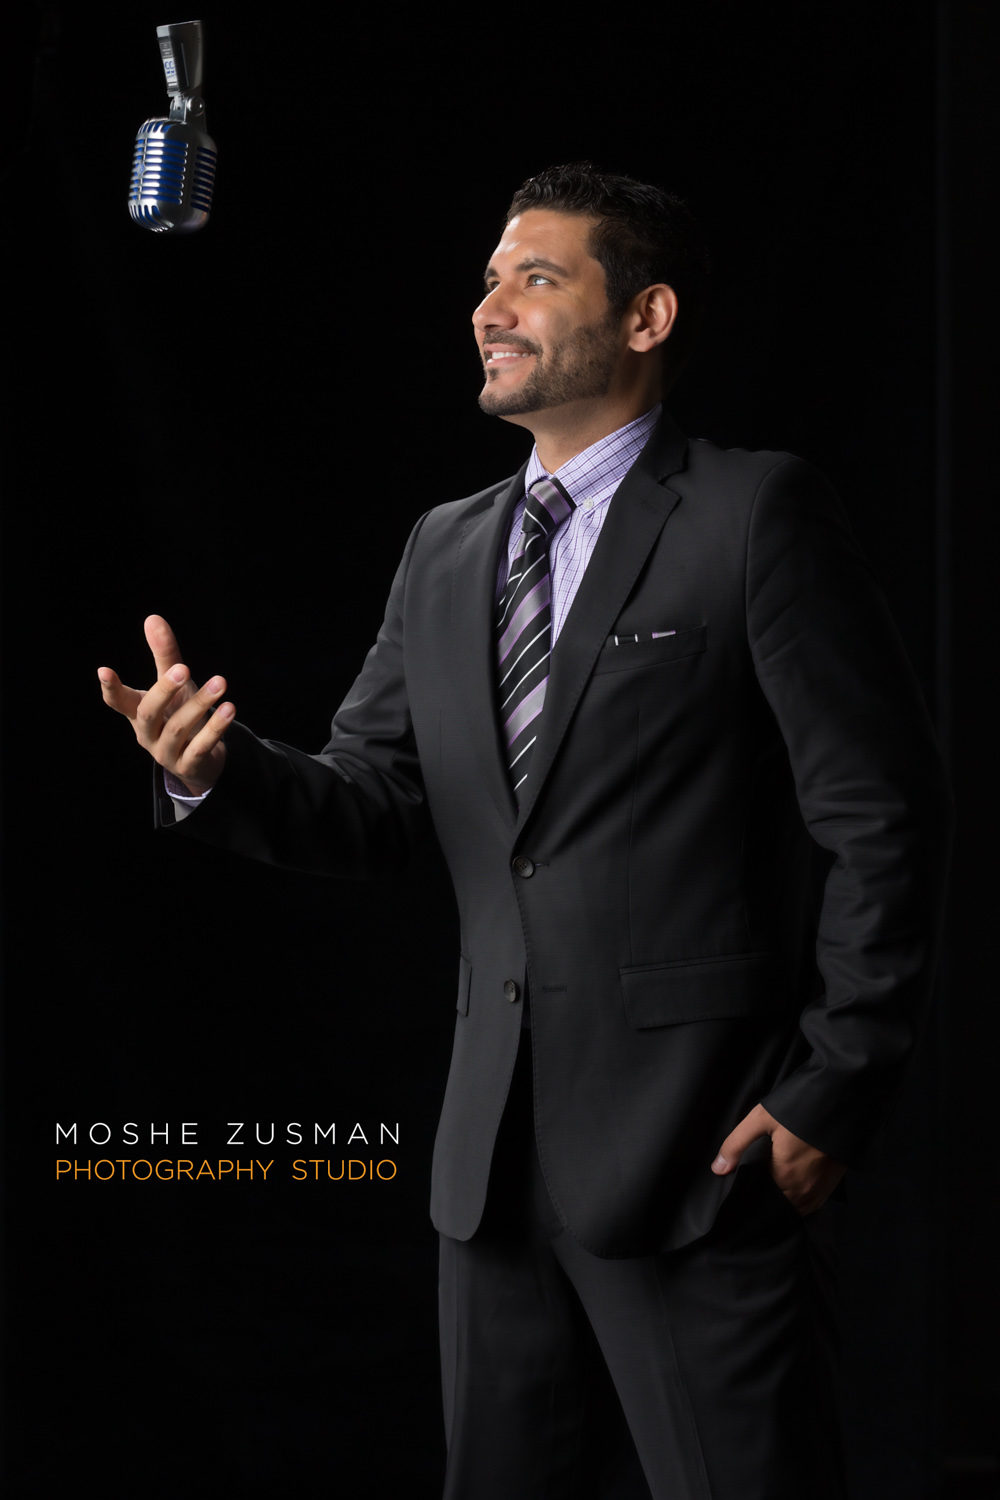 Iman_Huschmand_ xclusively_Entertainment_ Moshe_Zusman_Photography_Studio-1.jpg